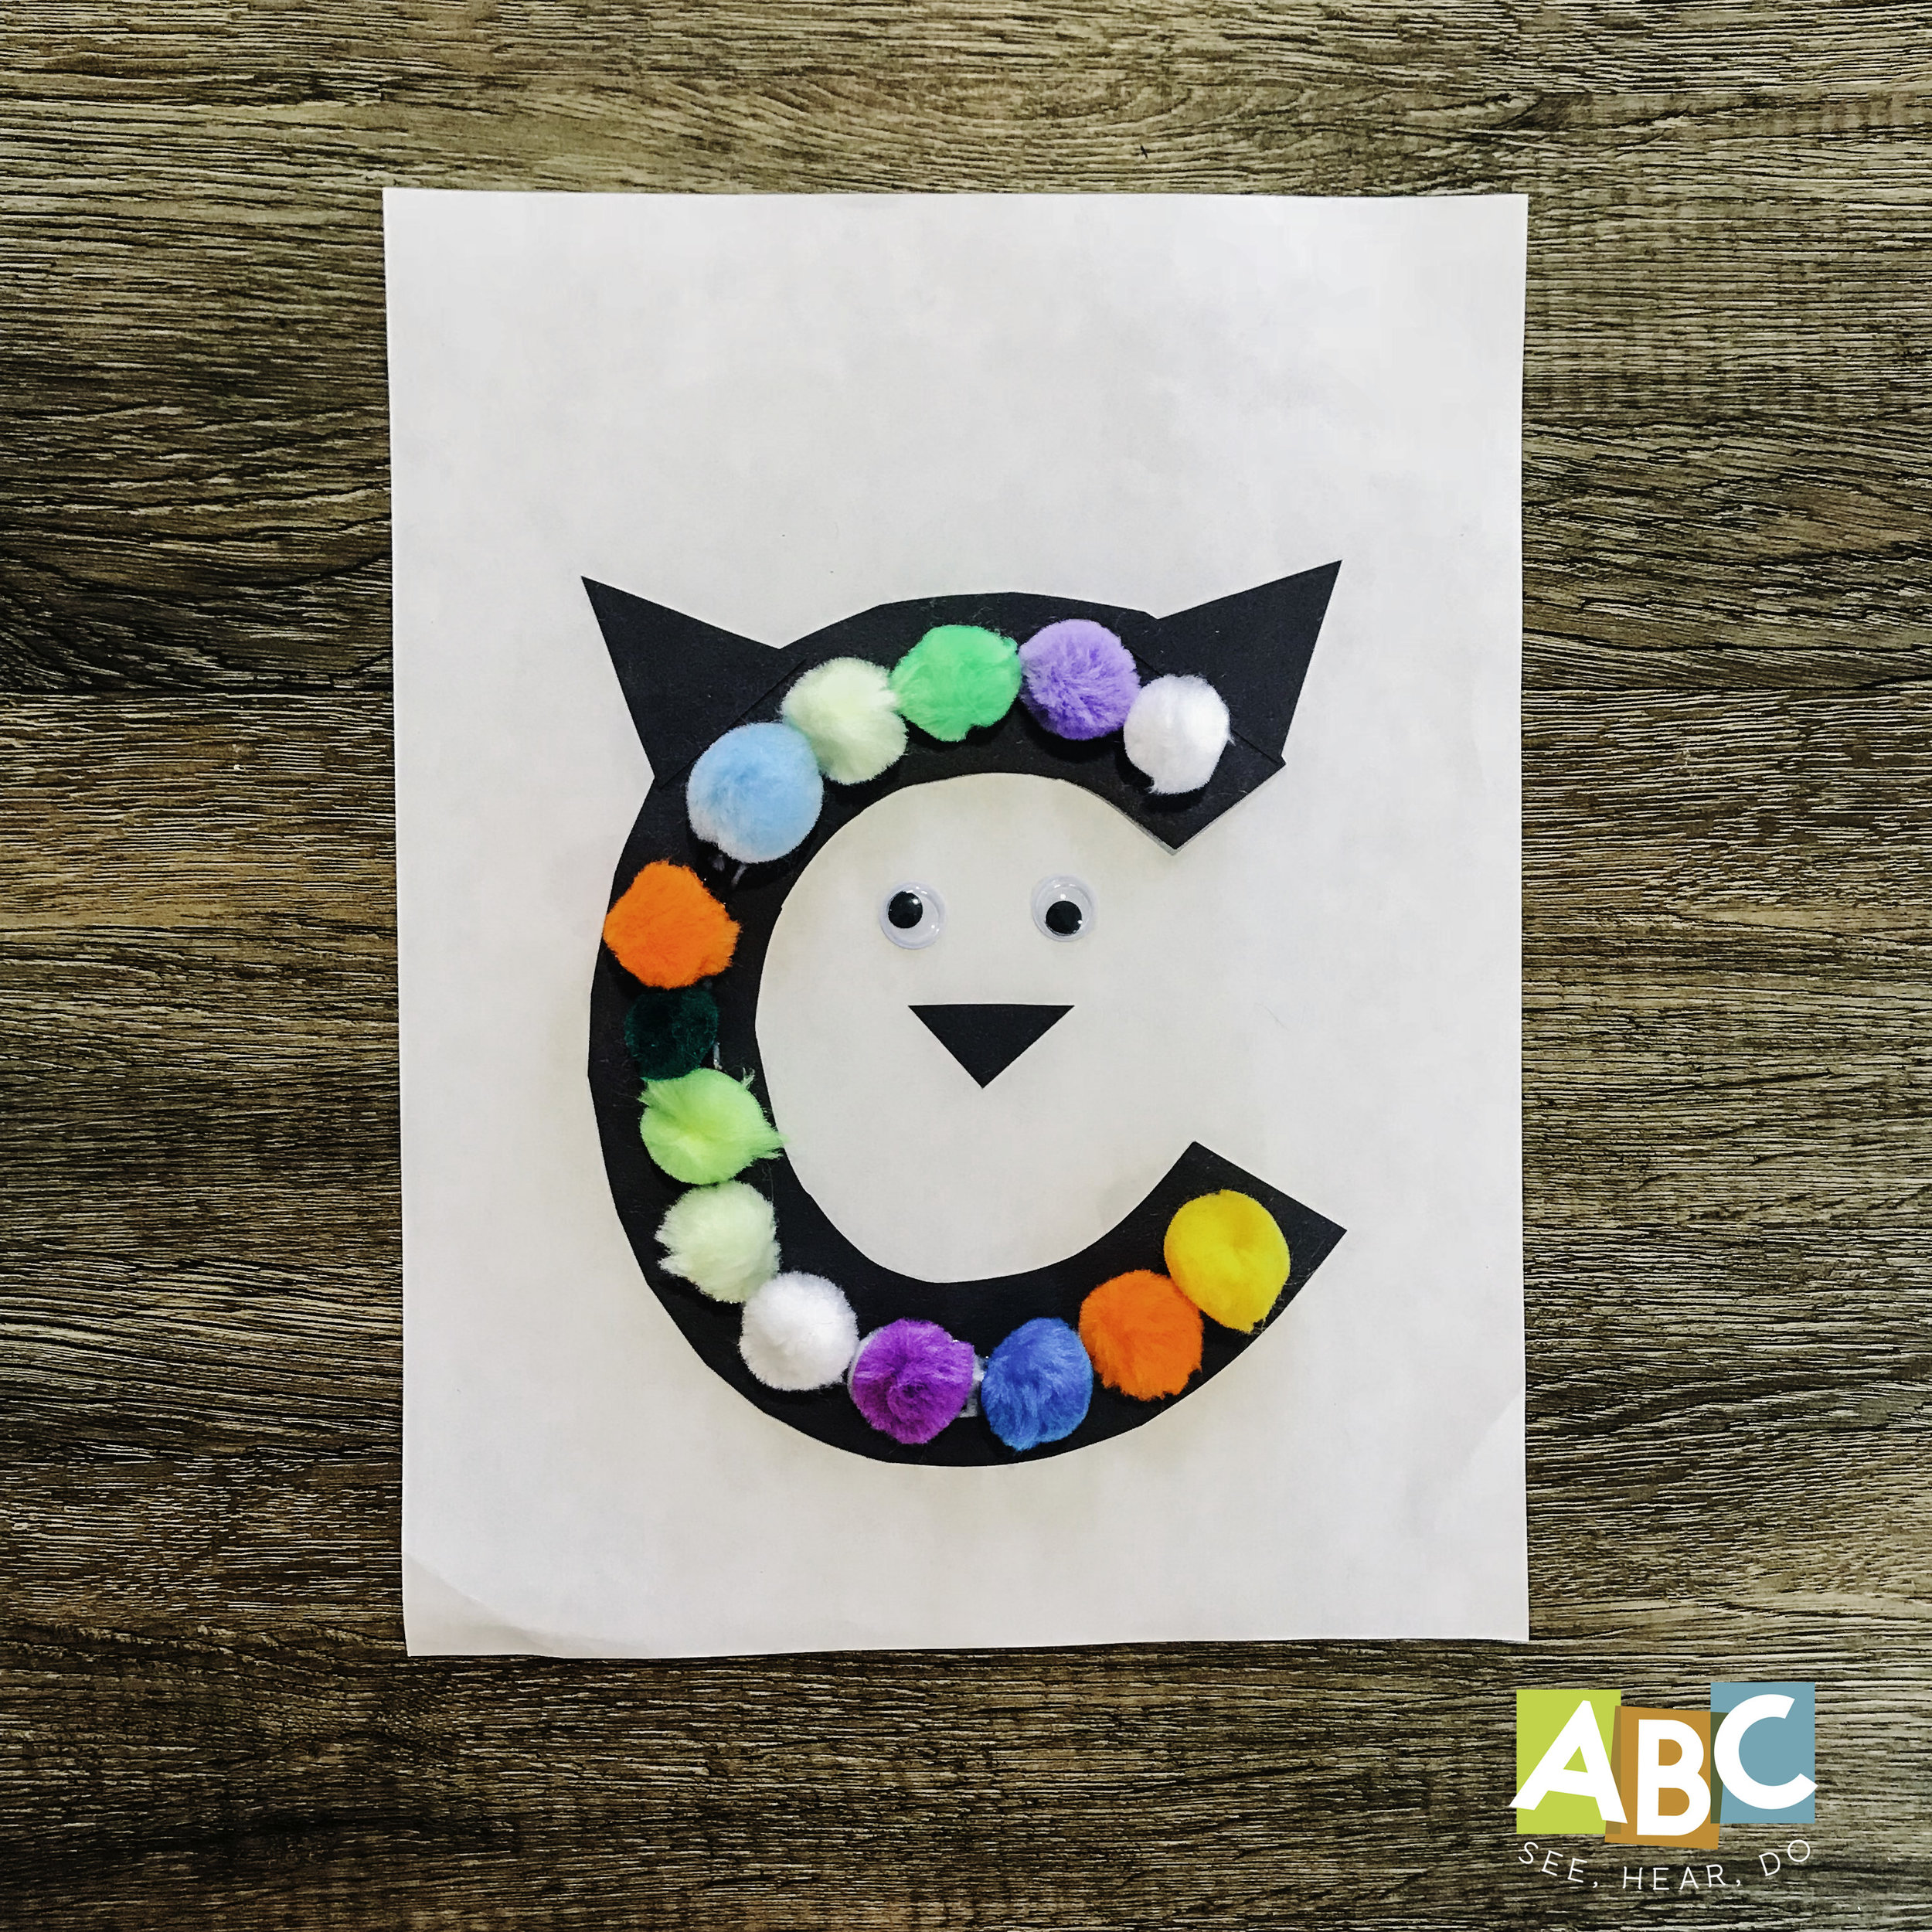 Letter C Crafts And Activities Abc See Hear Do